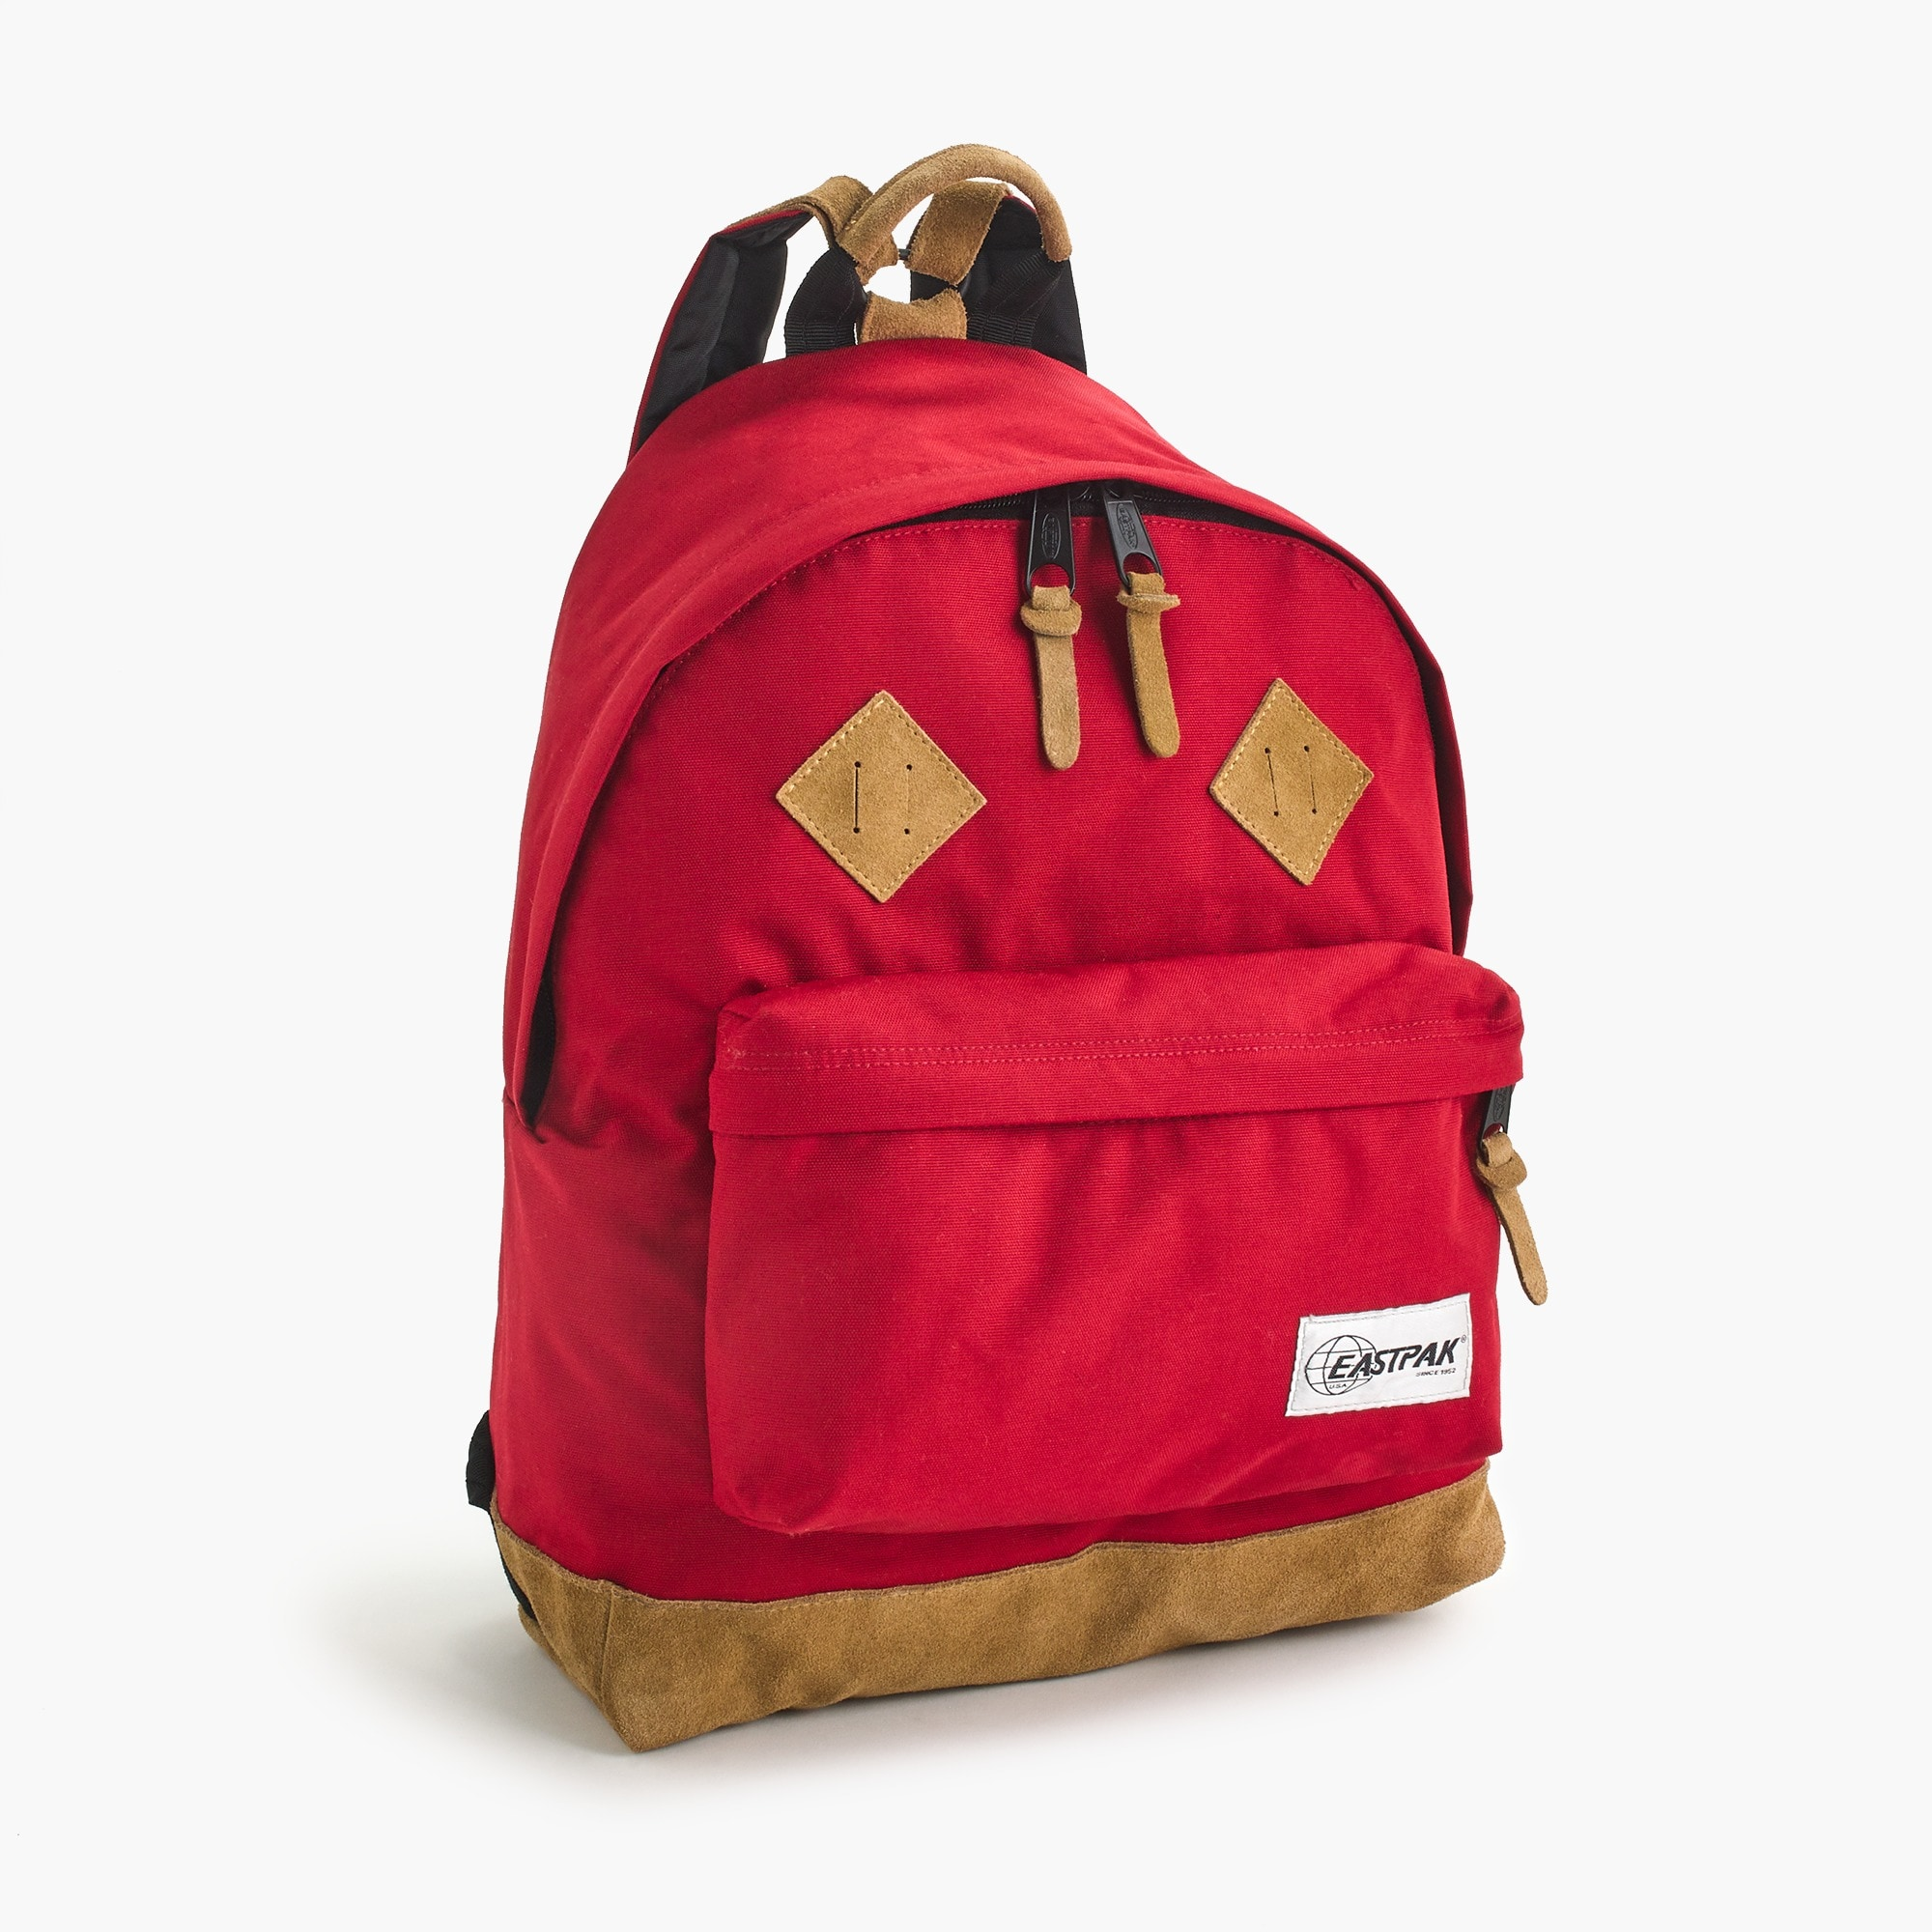 Eastpak® for J.Crew backpack men j.crew in good company c